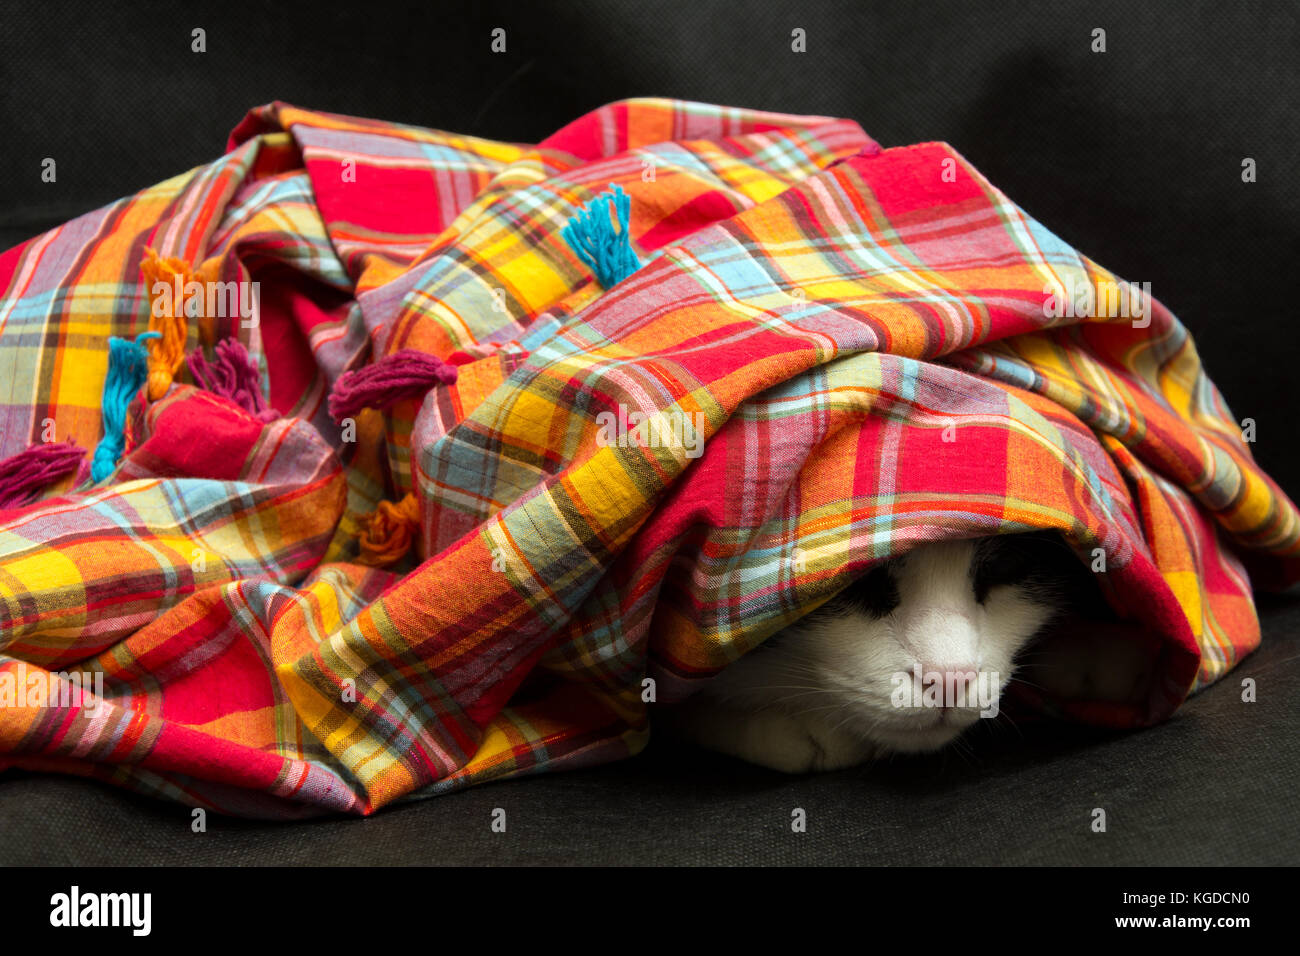 cat hidden under a colorful scarf on a black background - Stock Image